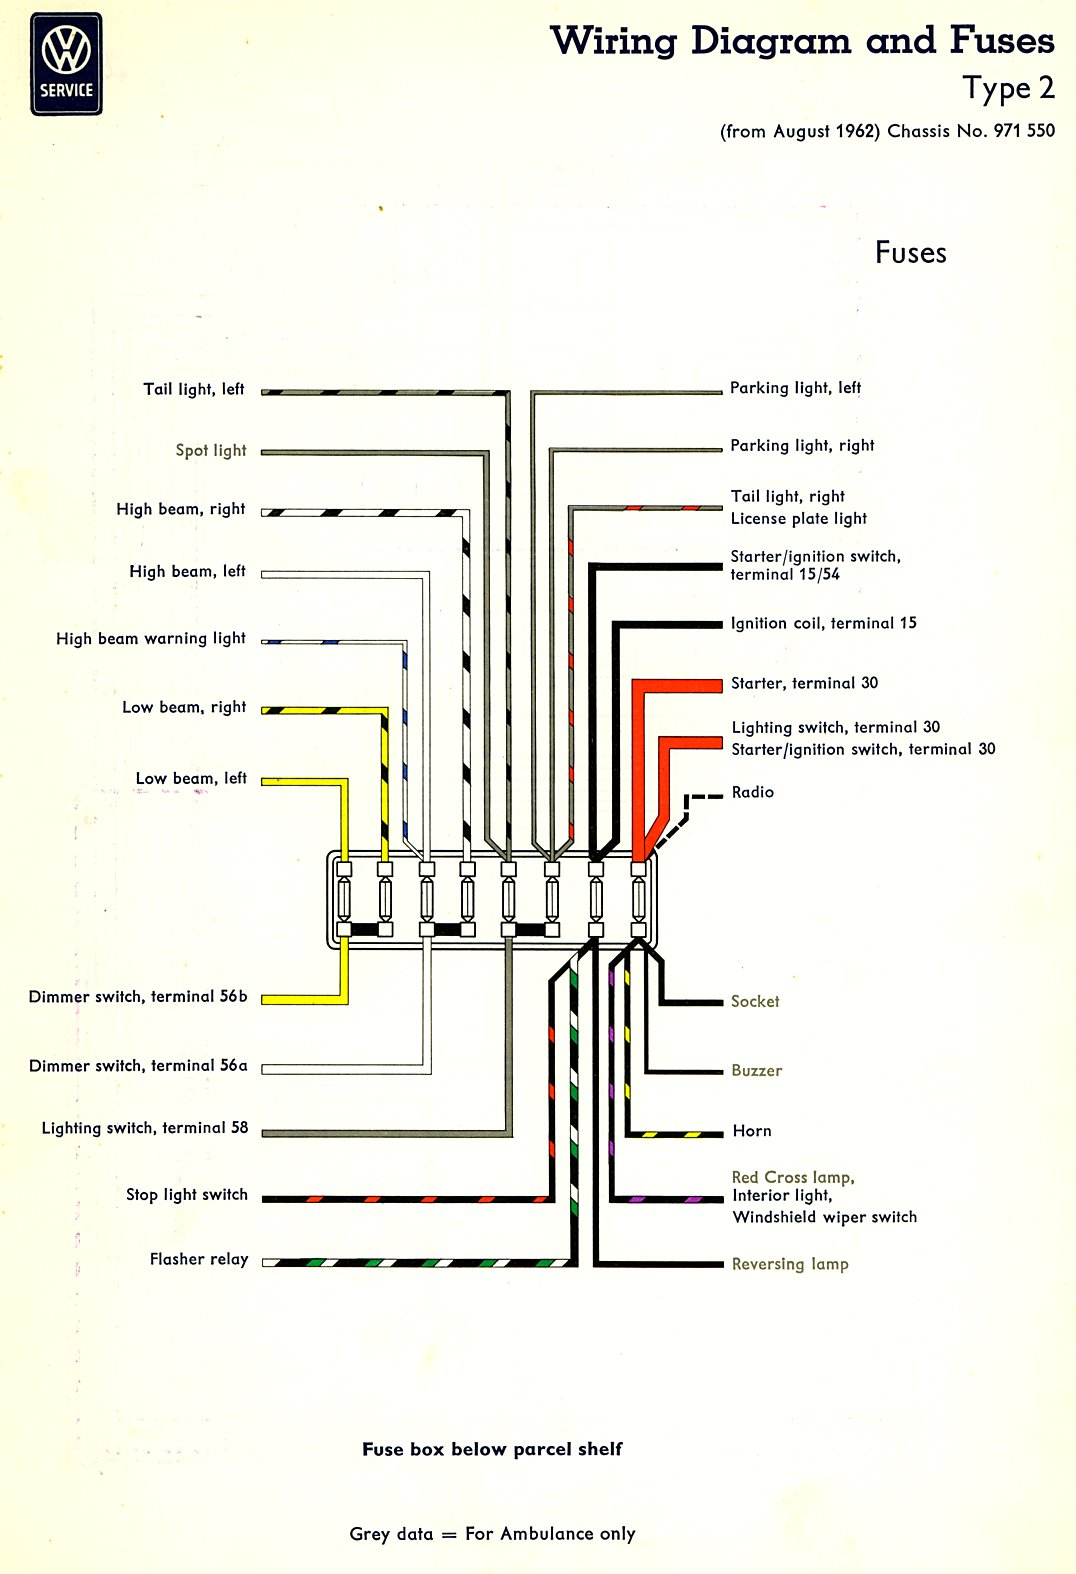 bus_63_fuses thesamba com type 2 wiring diagrams 1972 c10 fuse box at alyssarenee.co